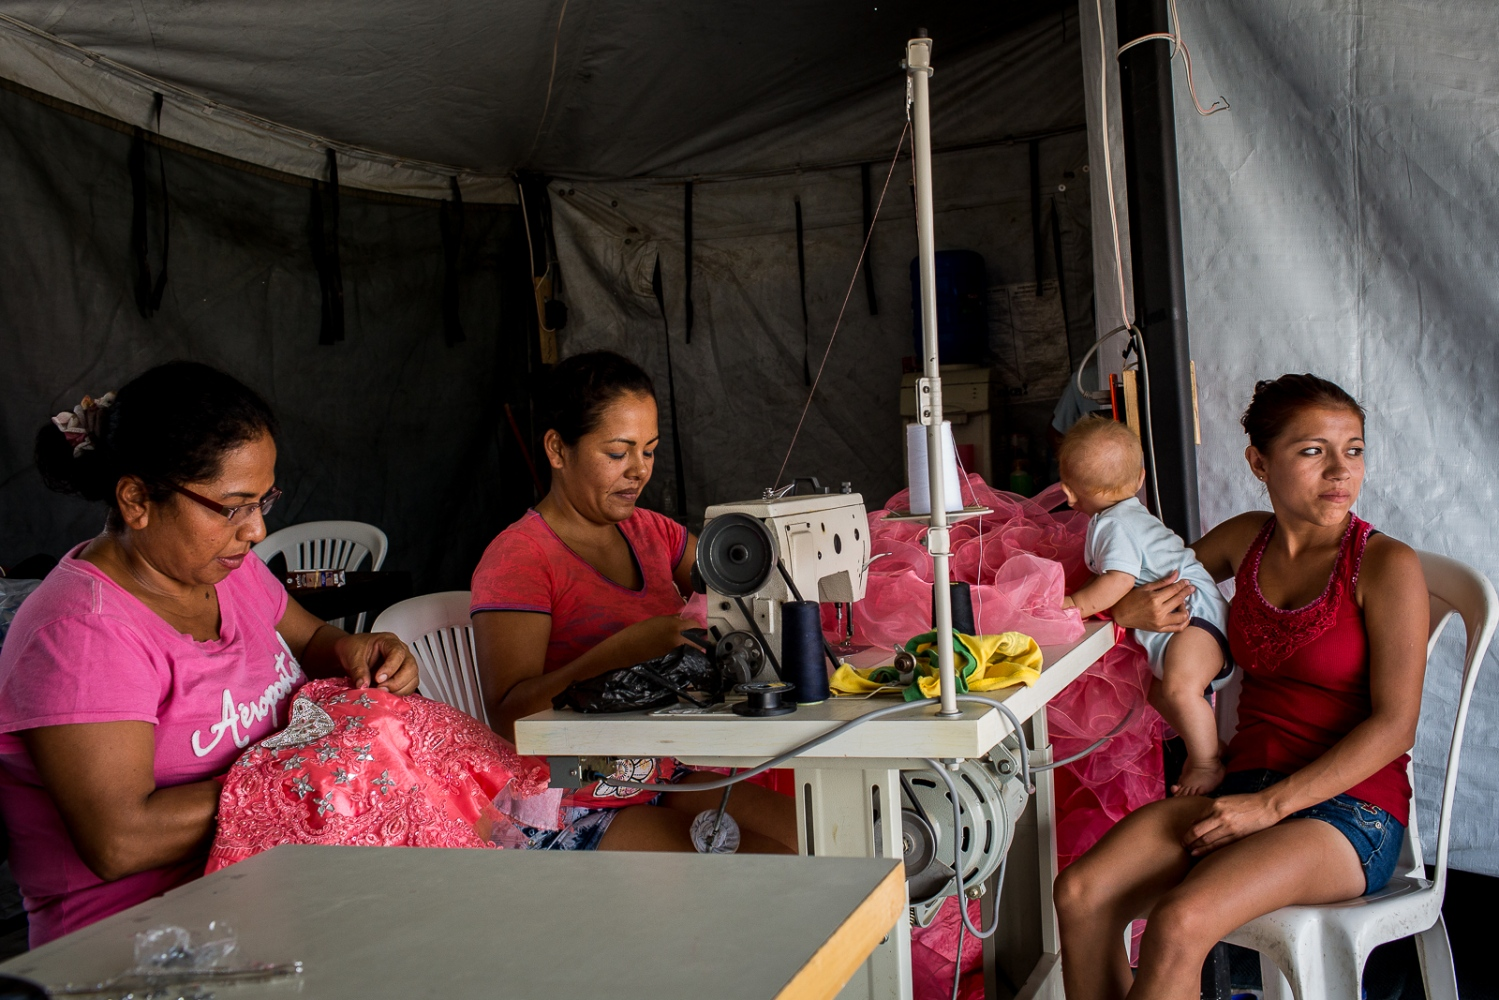 Miriam Zambrano (in the centre), 37, works on her sawing machine on a tent at the shelter located on the old airport, Portoviejo, Ecuador, with the help of another lady, while her daughter-in-law takes care of Miriam's grandson. Miriam managed to recover her sawing machine from the wreckage, and kept working as a dressmaker in order to sustain her six children, one daughter-in-law and one grandson. She is happy to be in the shelter and hopes that eventually she will get a house from the Government.